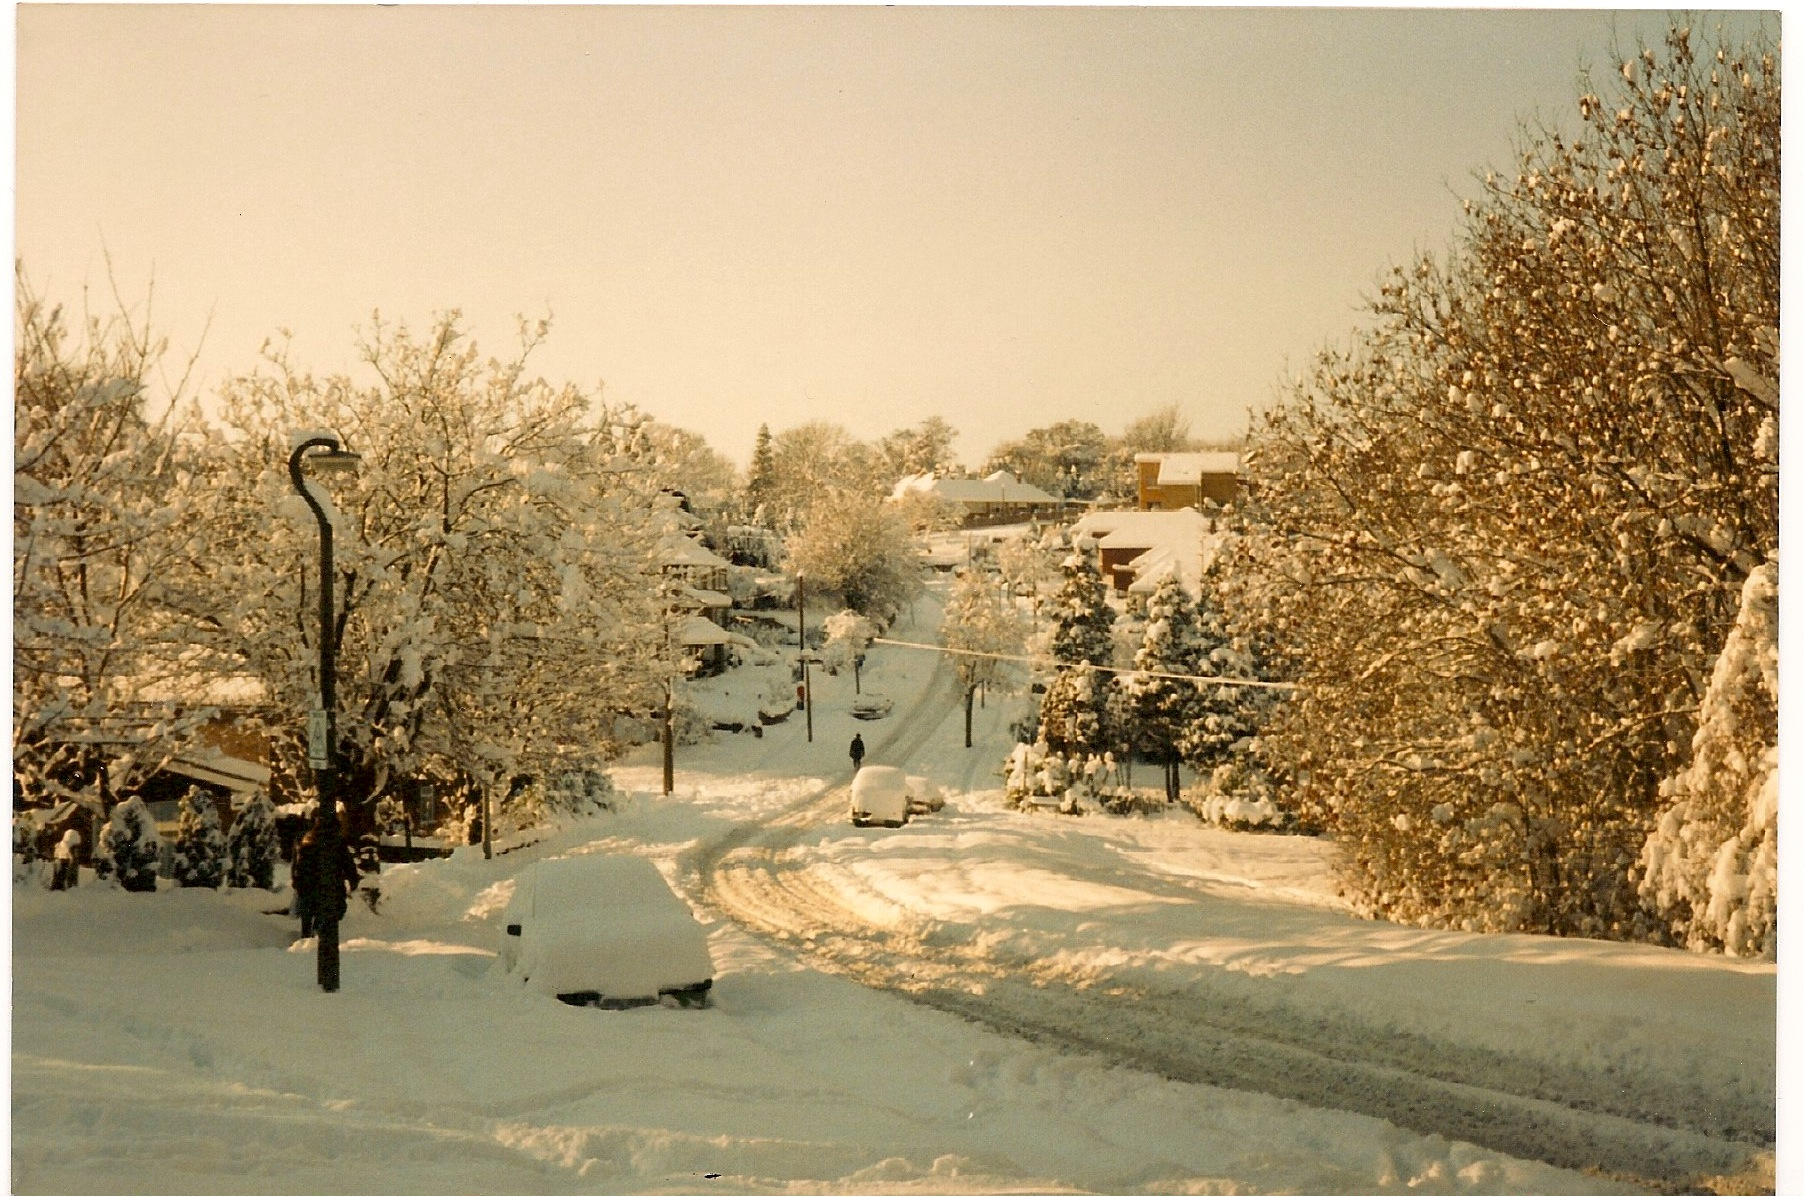 1987 Snow - Looking down Hempstead Hill towards Hempstead. Spekes Road to the left in the dip